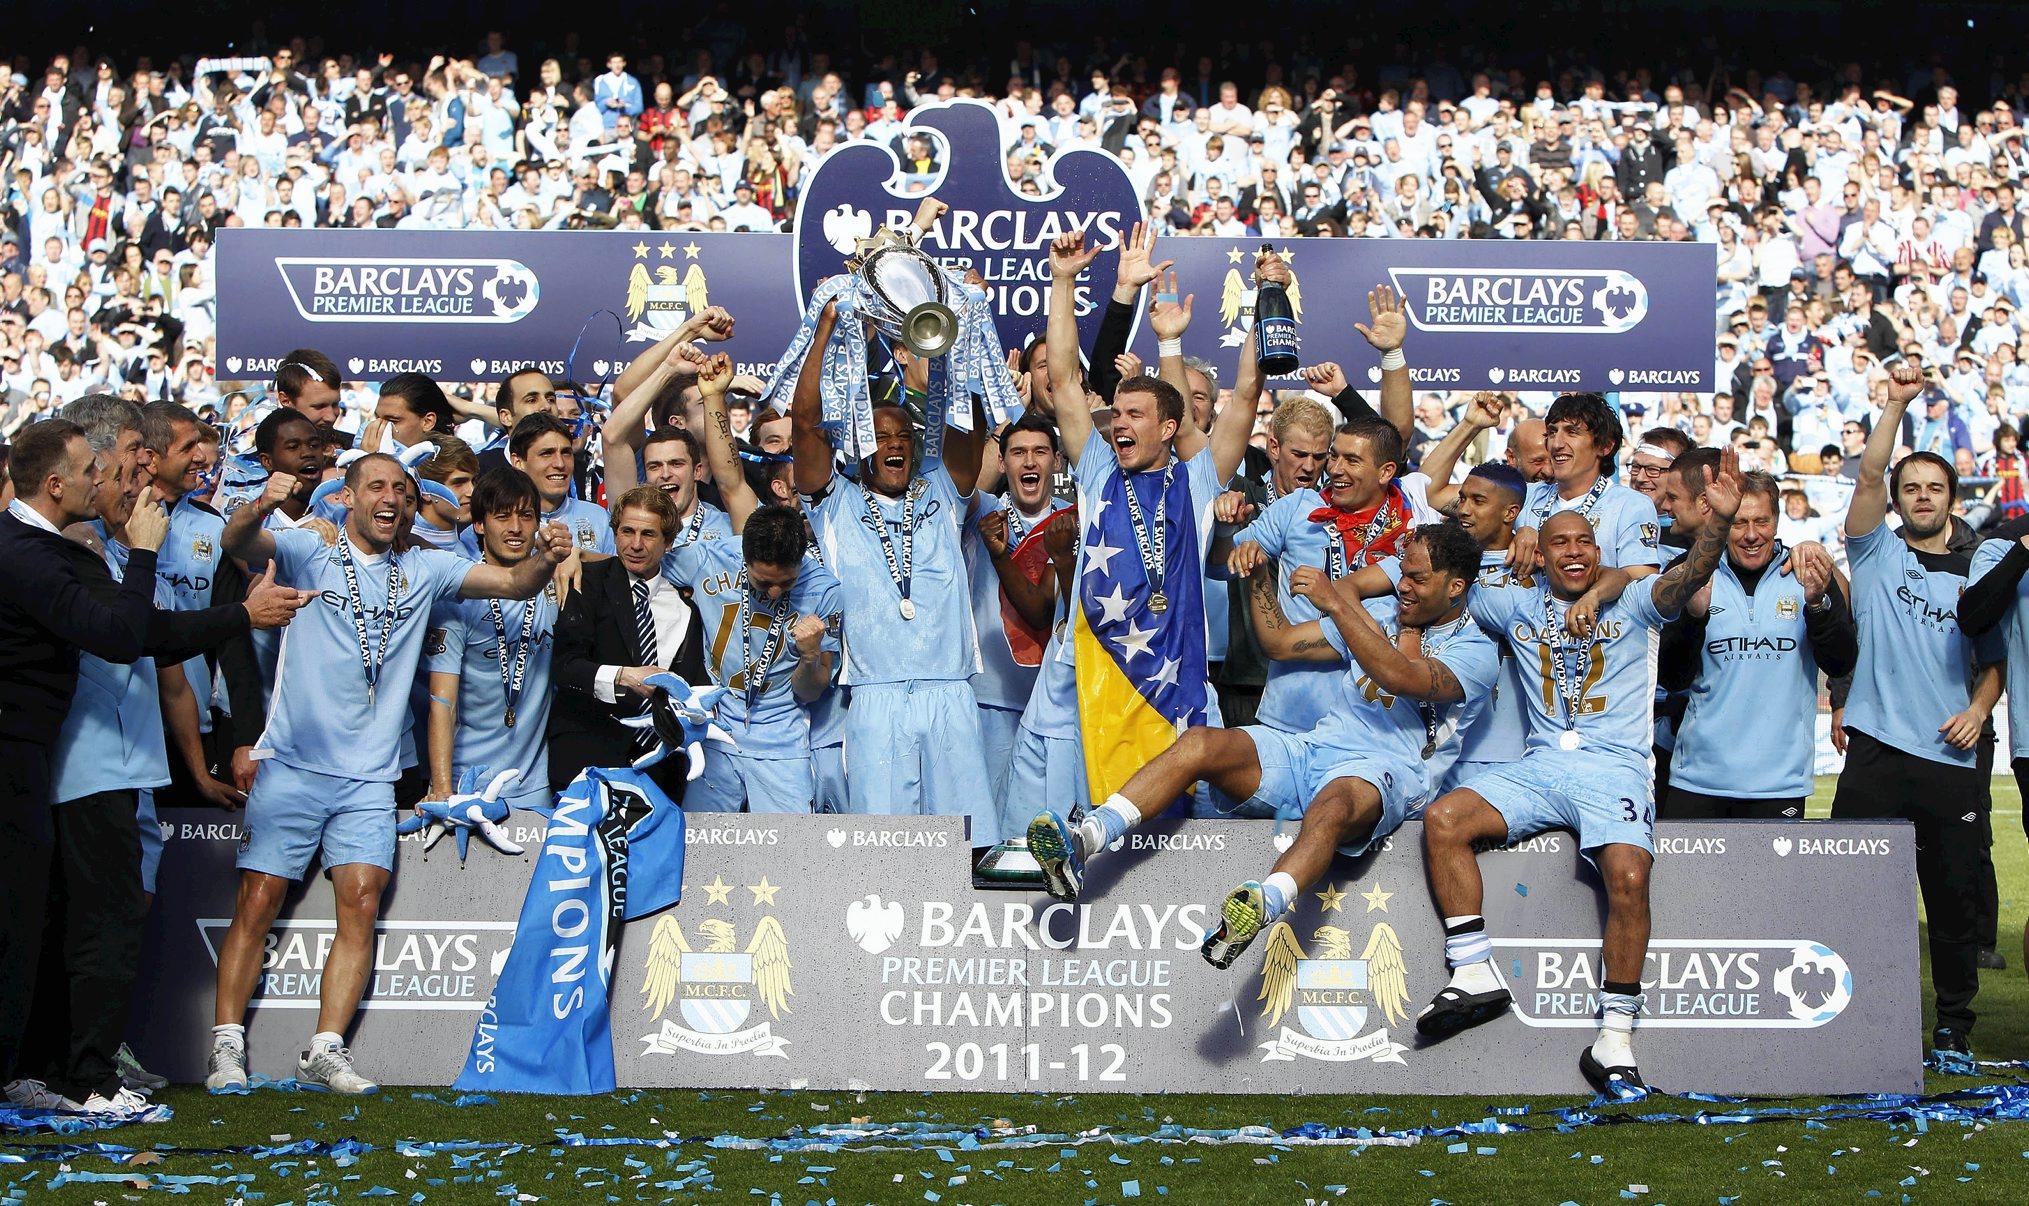 City were Champions Of England in 2012 - the first time in 44 years - despite some strange refereeing decisions that went against them and in favour of United in the 2011/12 season.